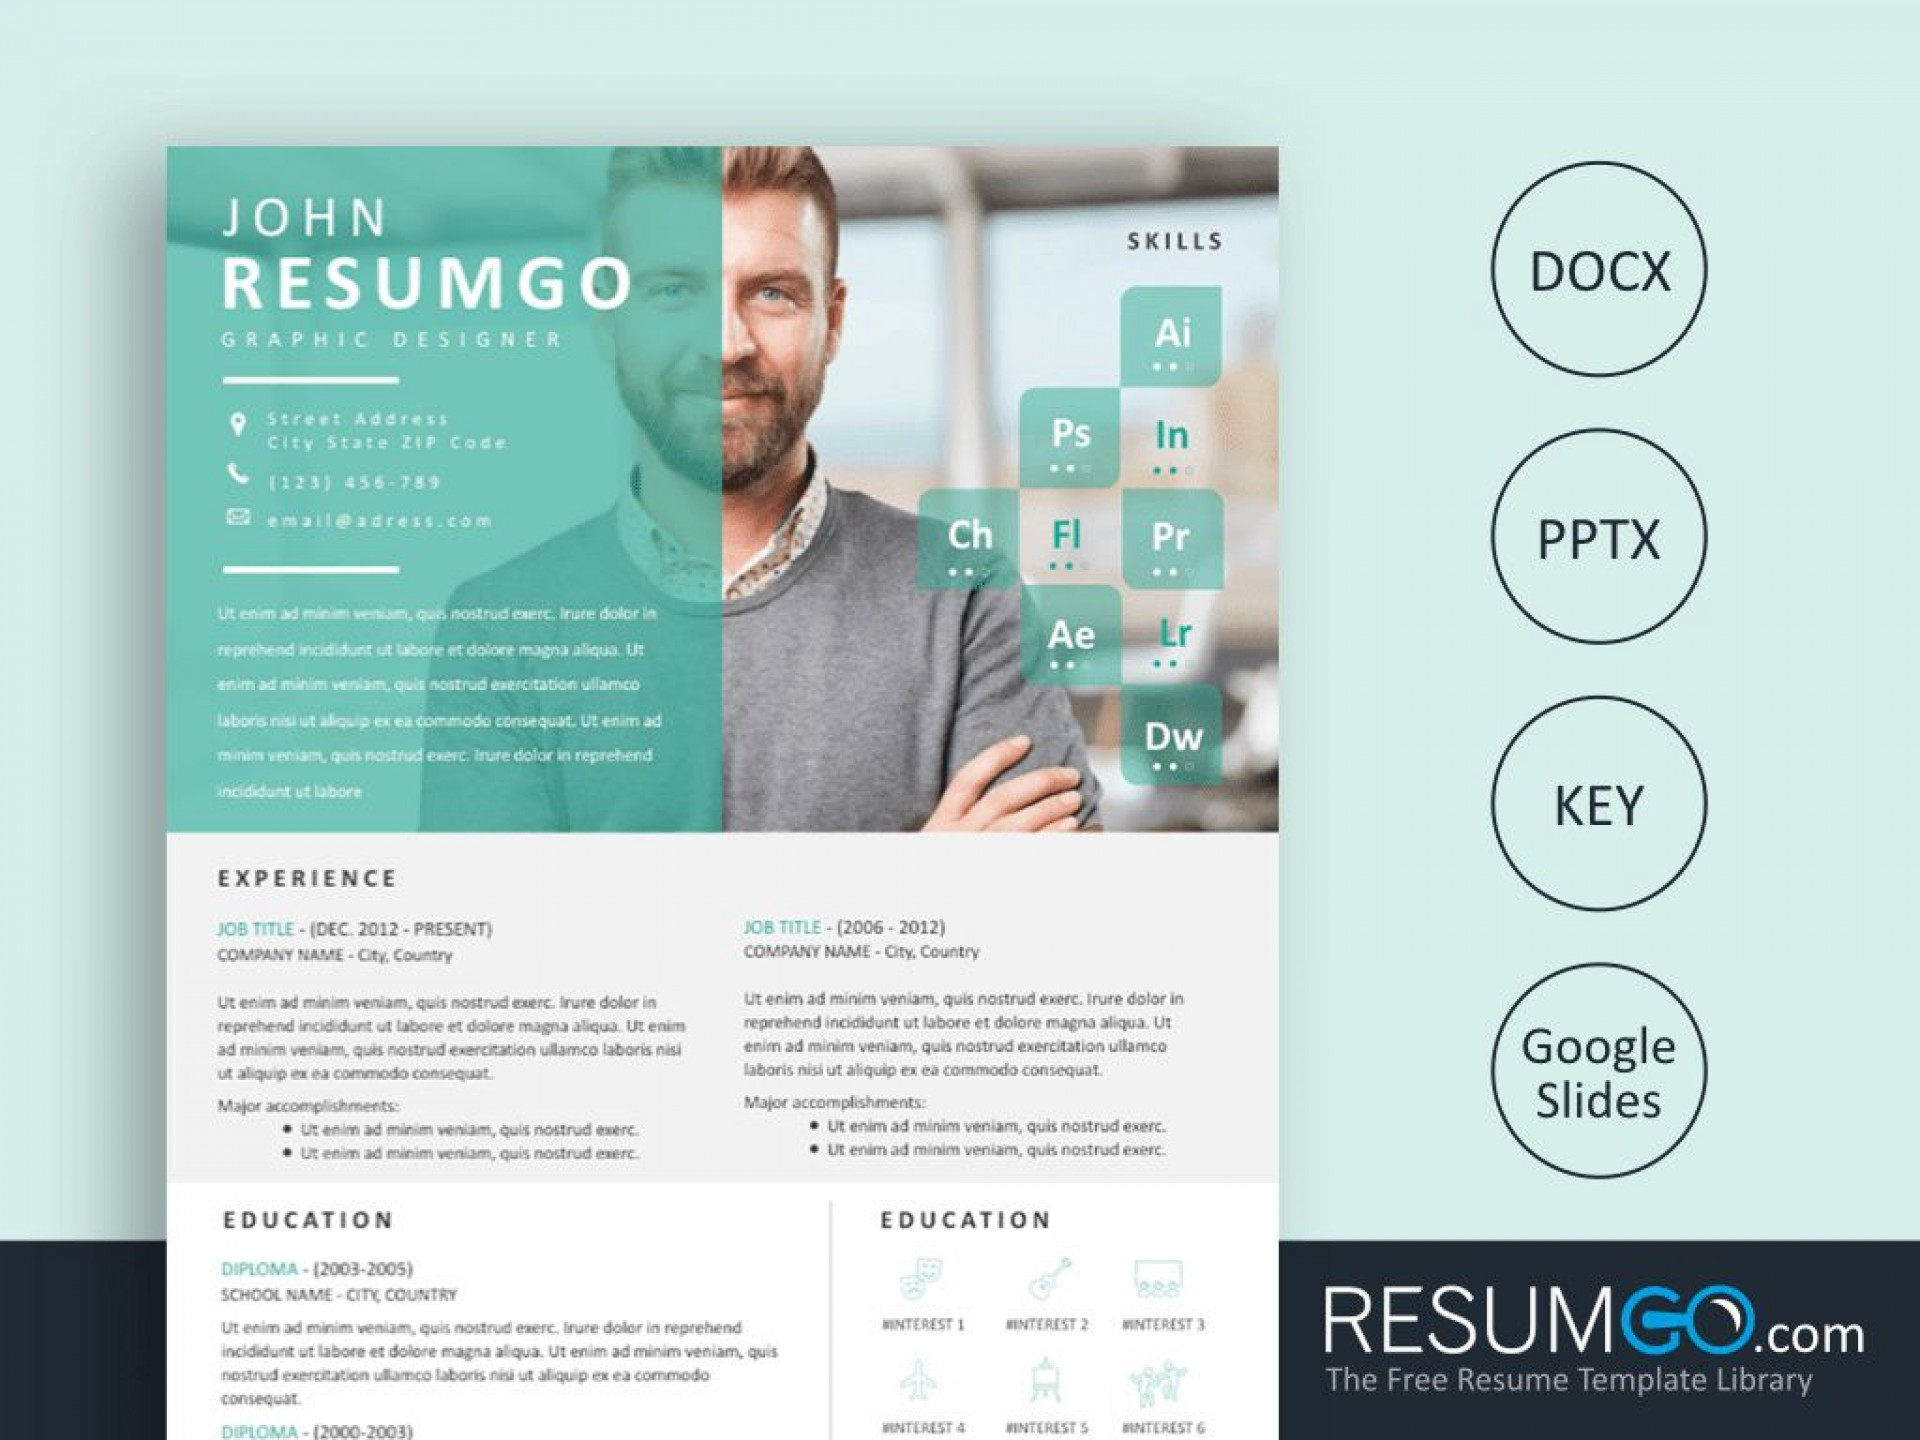 000 Awesome Eye Catching Resume Template Concept  Microsoft Word Free Download Most1920